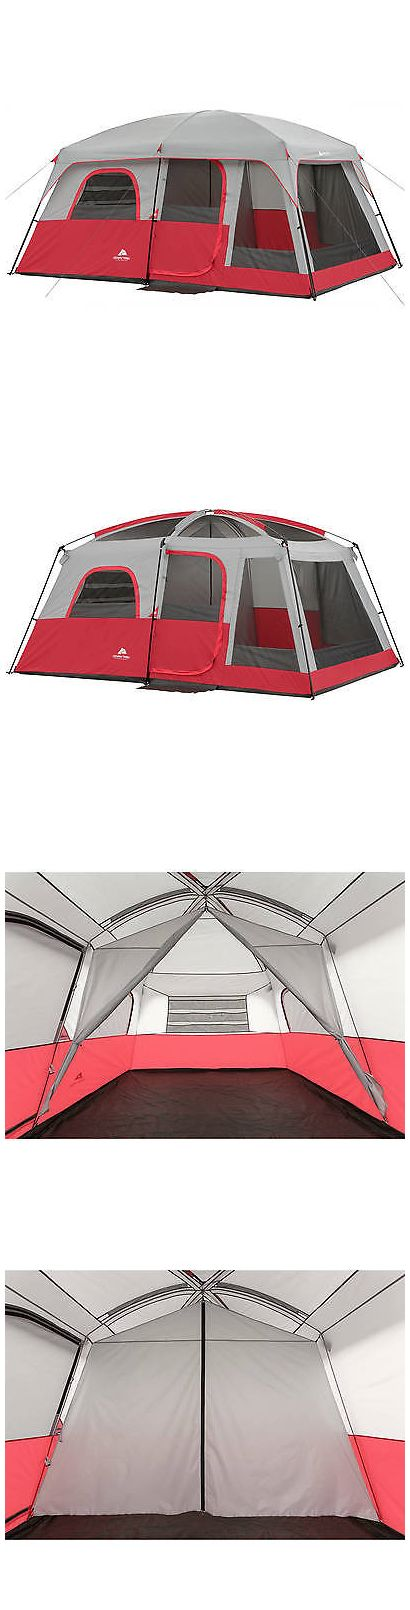 Camping Tent Ideas - Wenzel Tents - Choosing the Best Backpacking Or Cabin Camping Tent ** For more information, visit image link. #naturegram